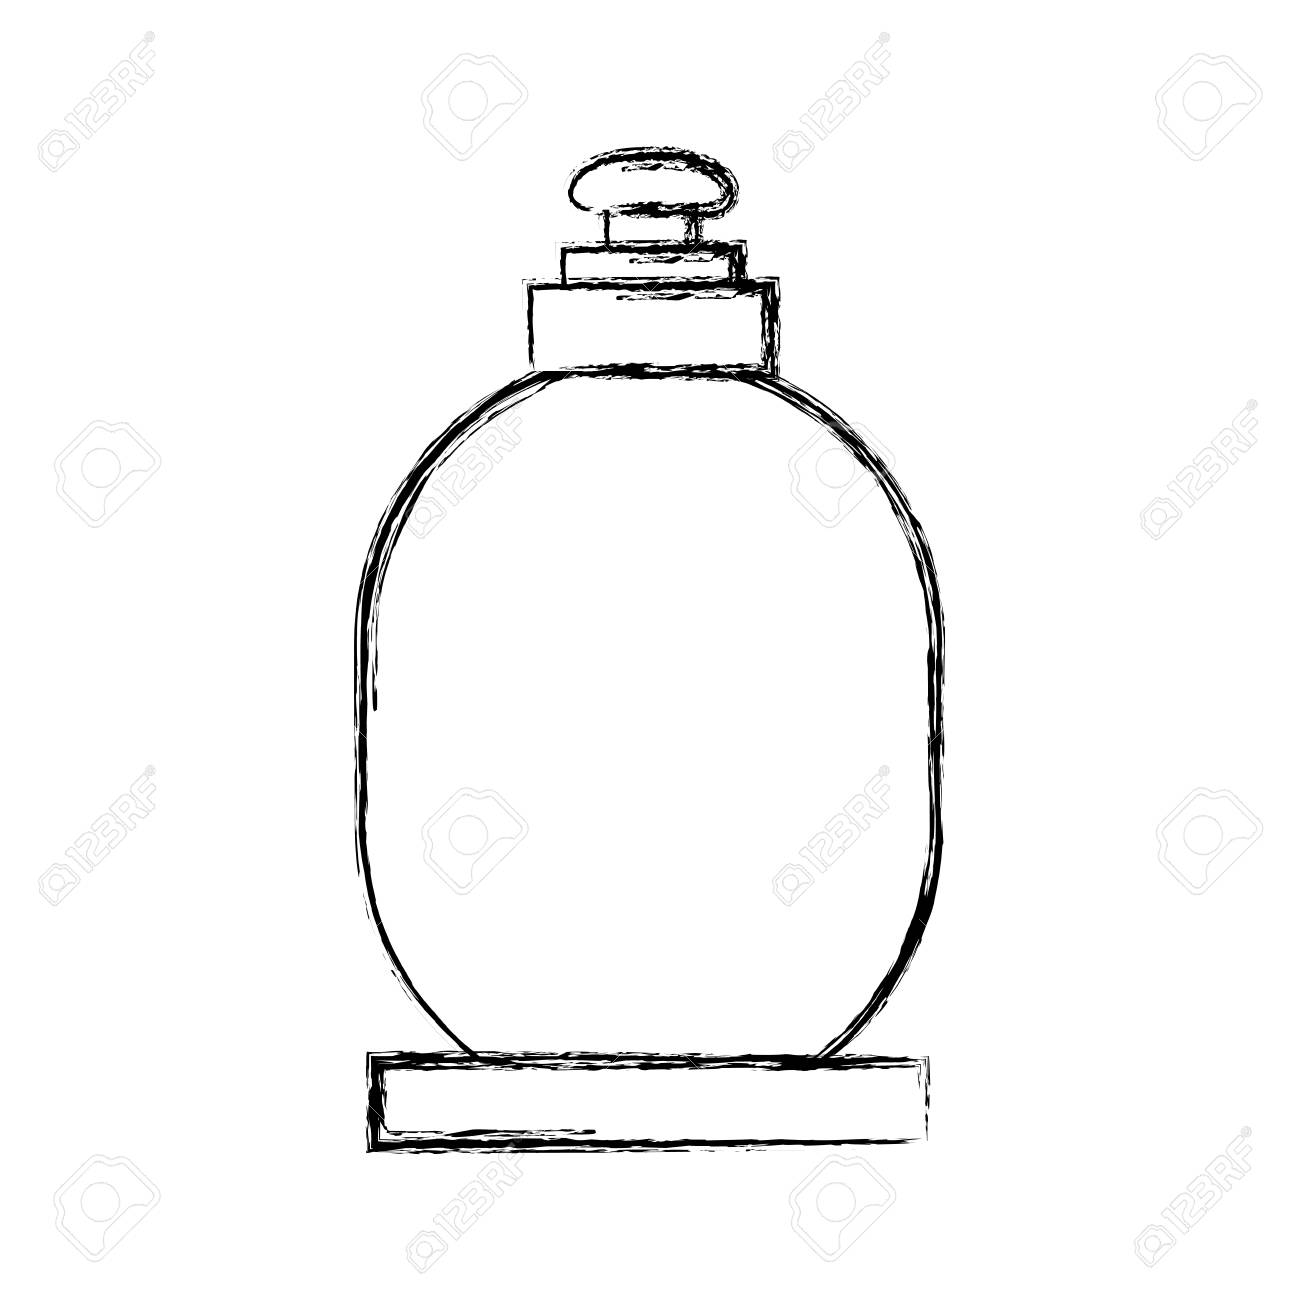 shampoo bottle design template royalty free cliparts vectors and